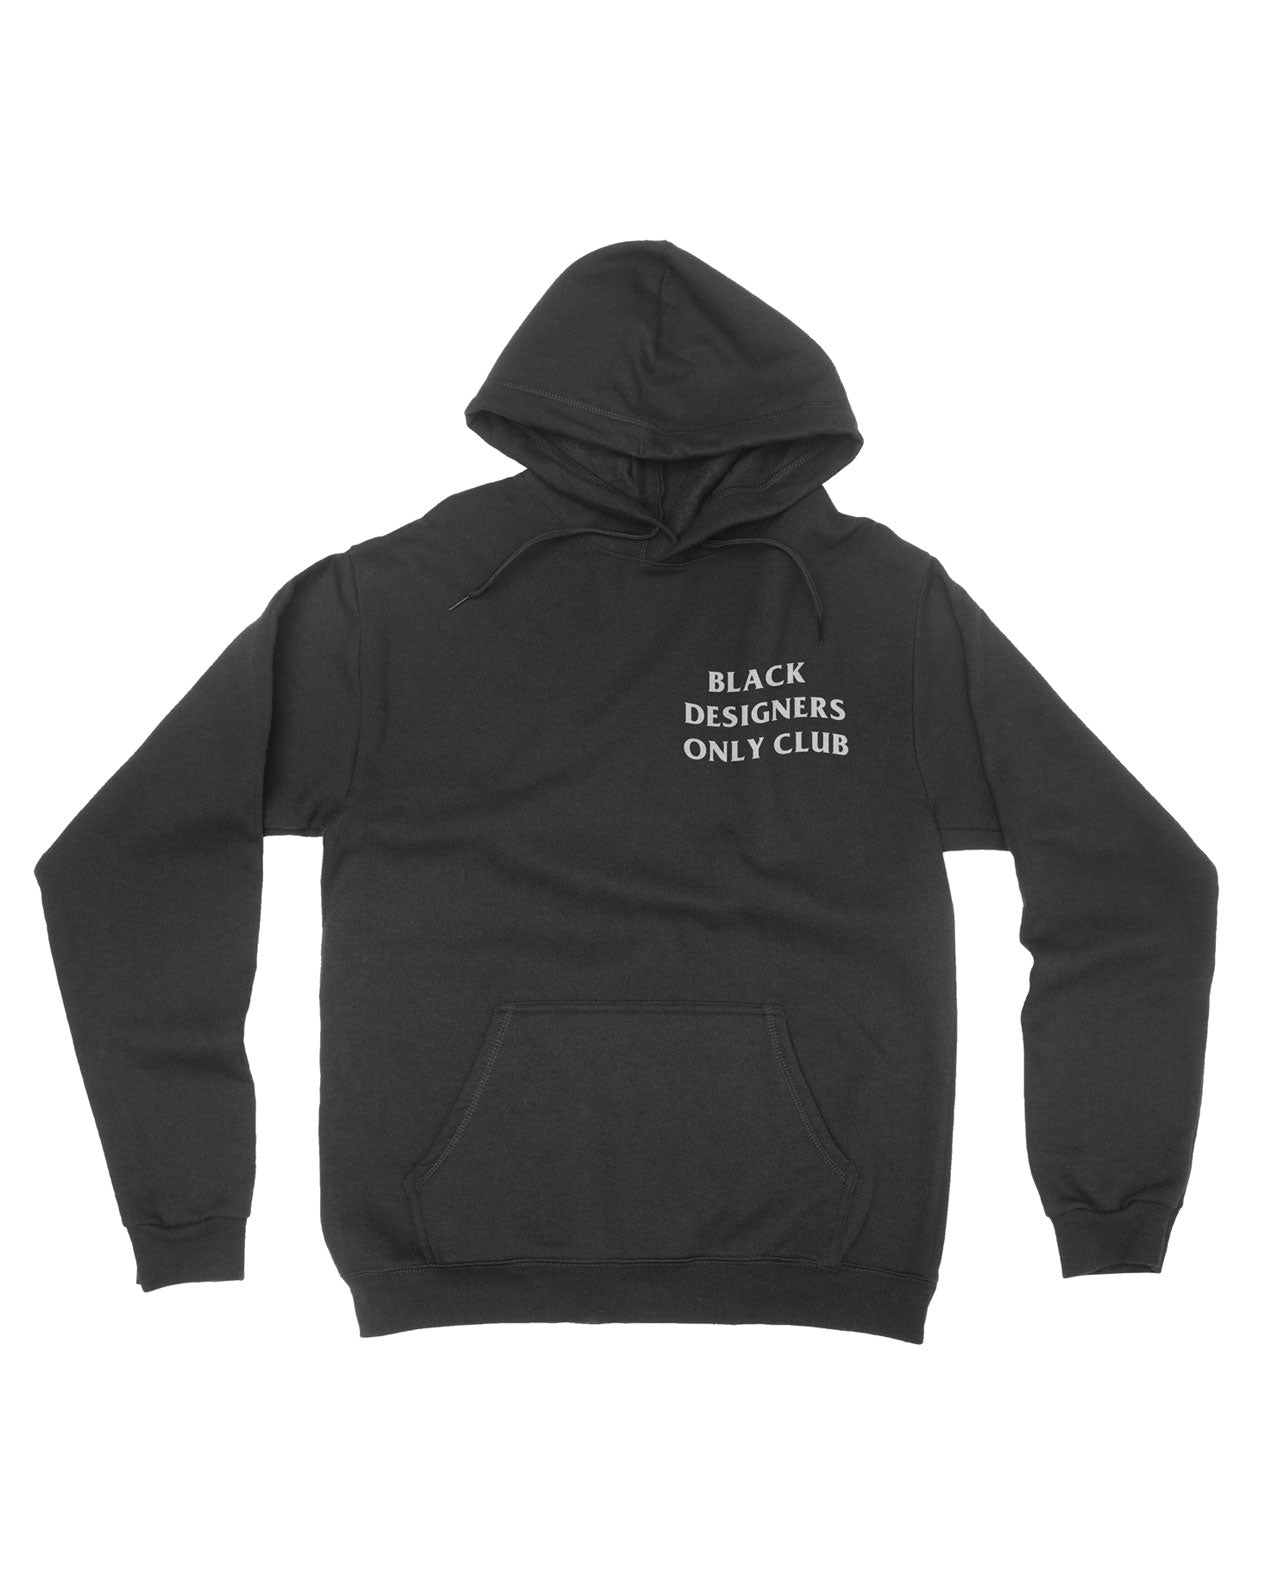 Black designers only Unisex Hoodie - Luxury Brand LA - Shop Latest Trends and Hottest Apparel from Luxury Brand LA